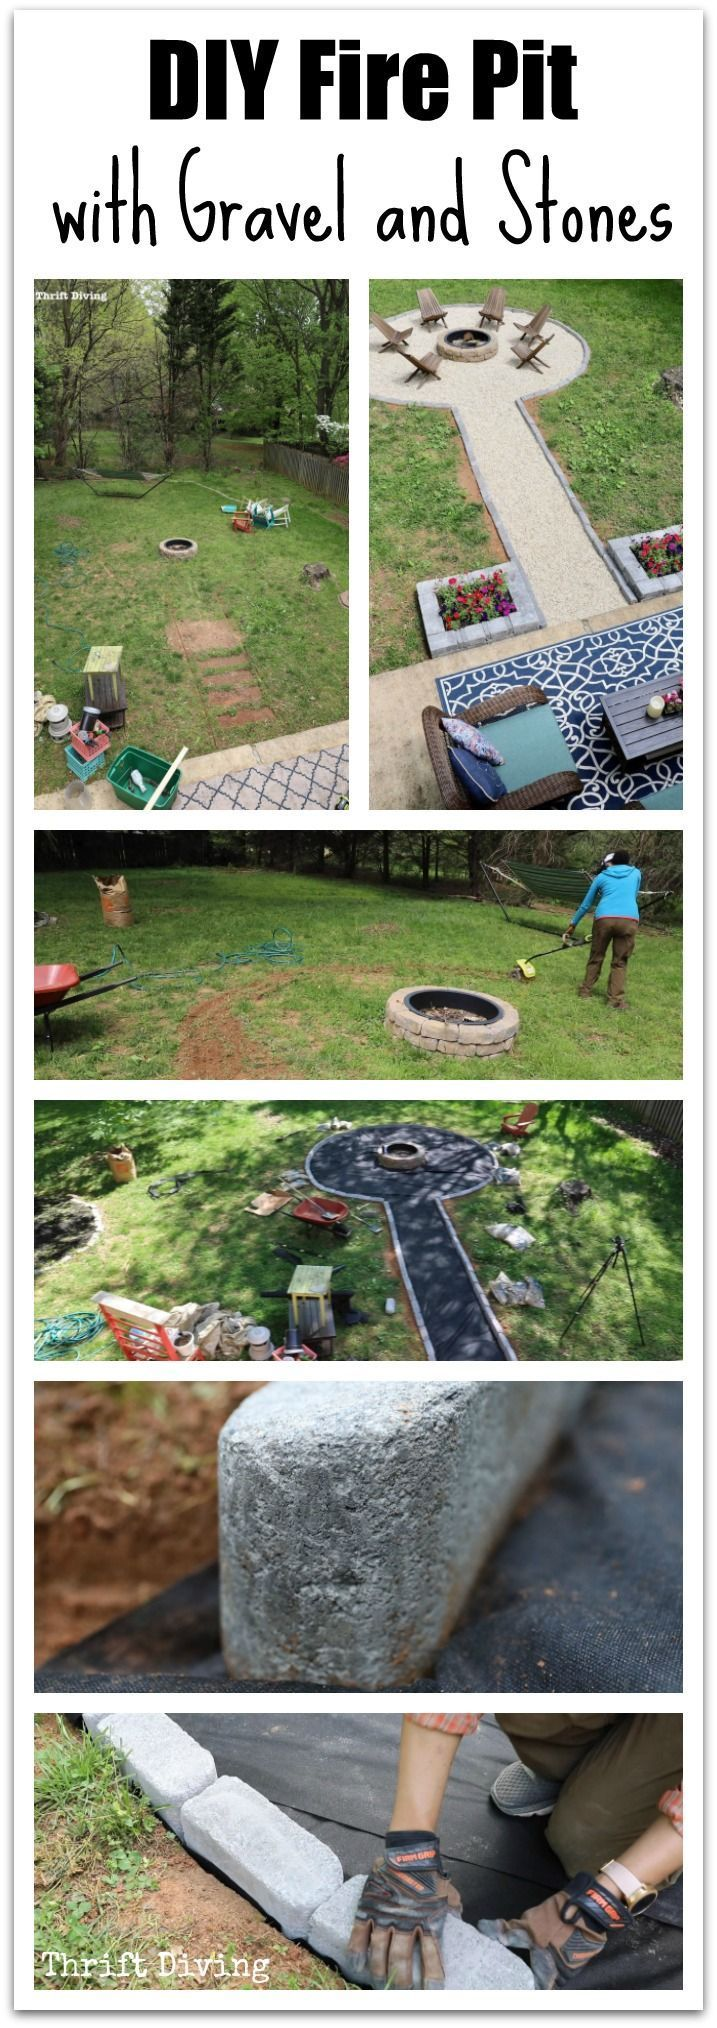 How to Build a DIY Fire Pit With Gravel and Stones